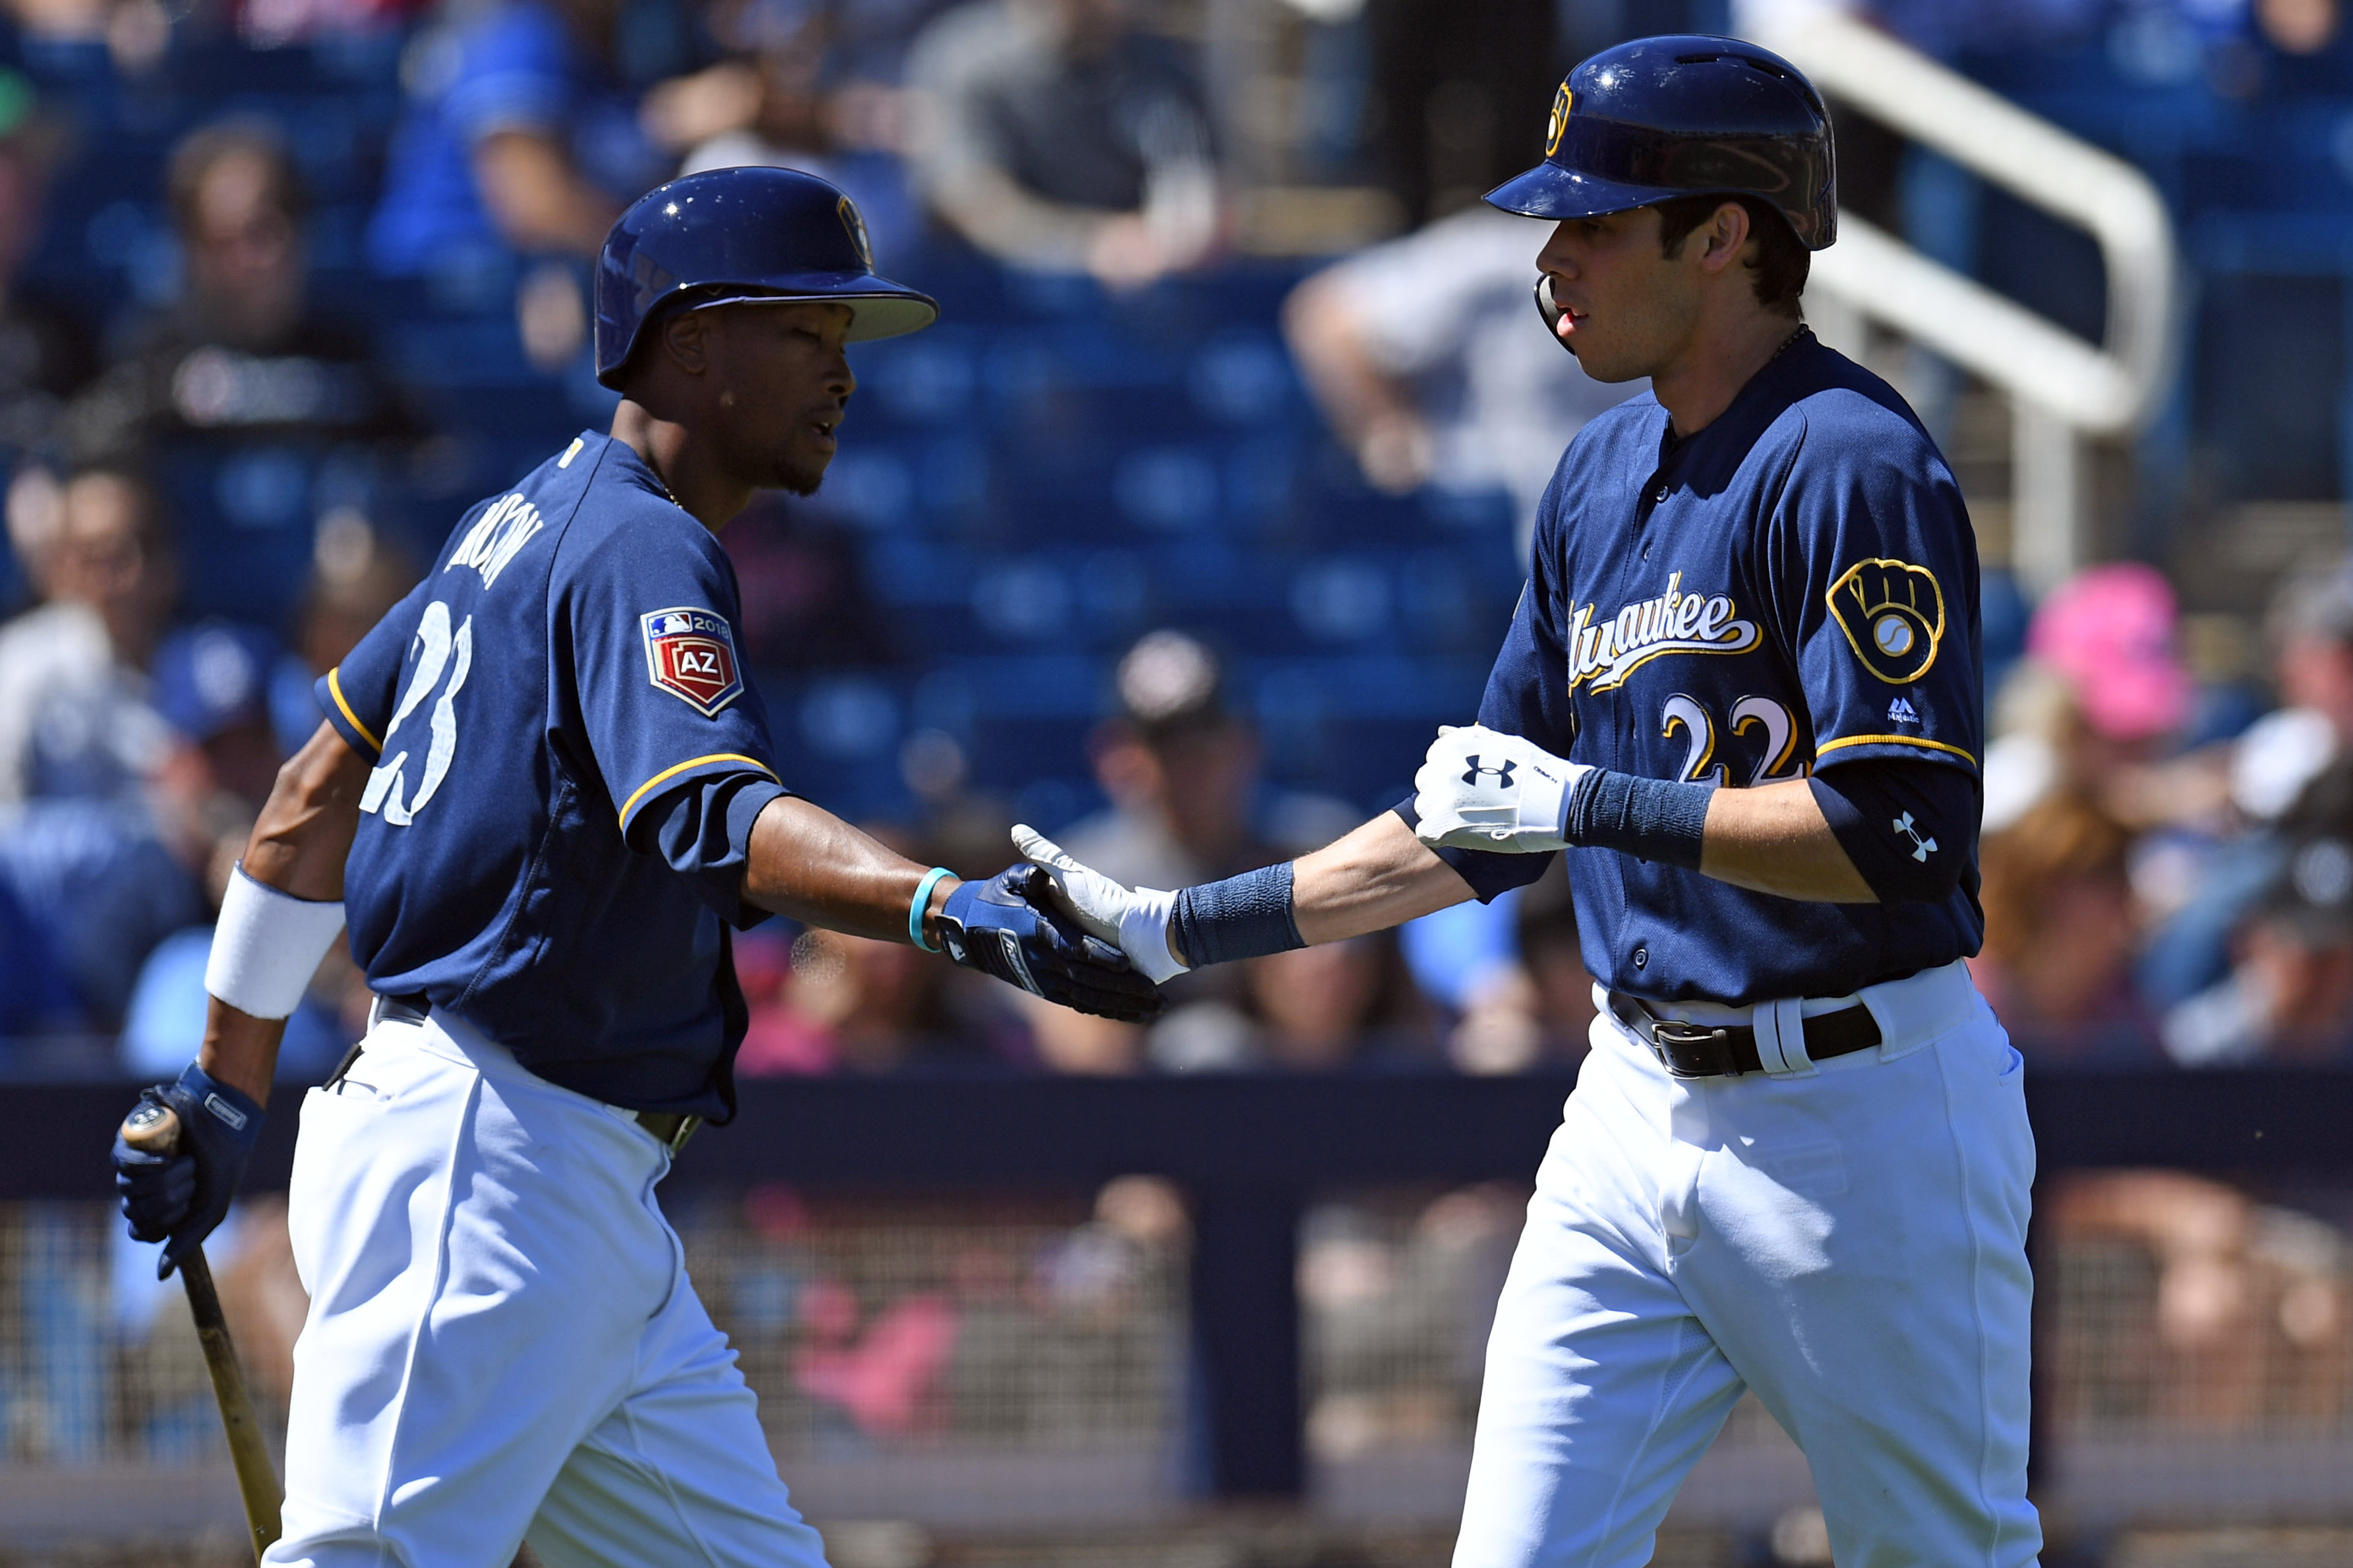 Milwaukee Brewers Bedroom In A Box Major League Baseball: Beyond The Box Score 2018 MLB Previews: NL Central